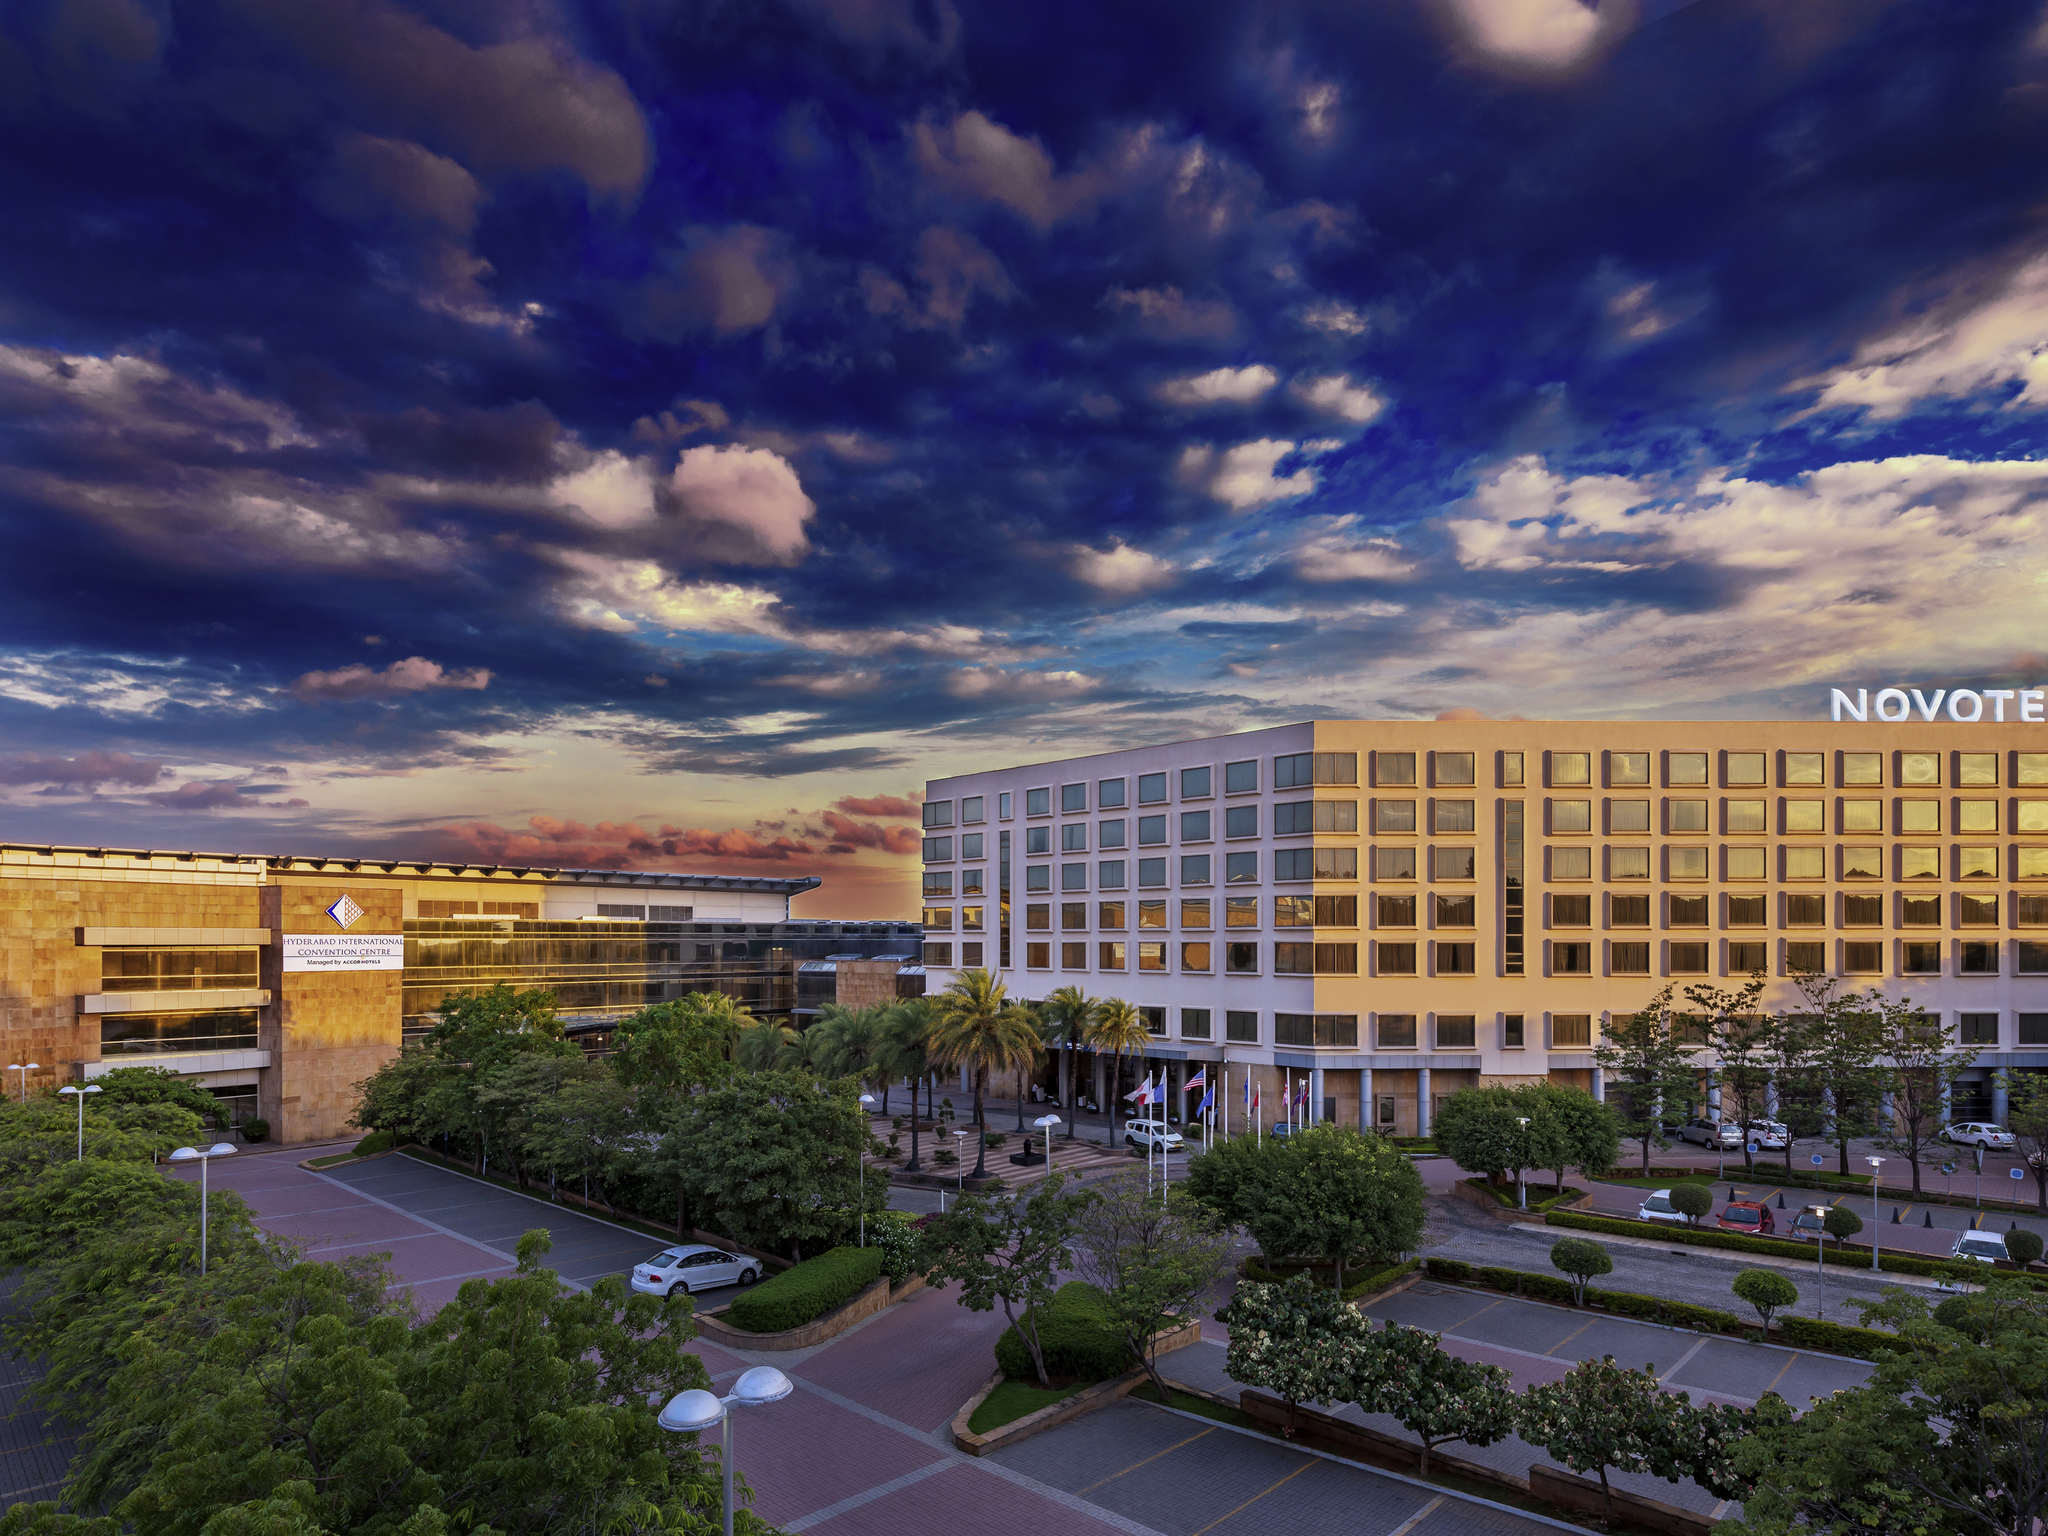 Hotell – Novotel Hyderabad Convention Centre